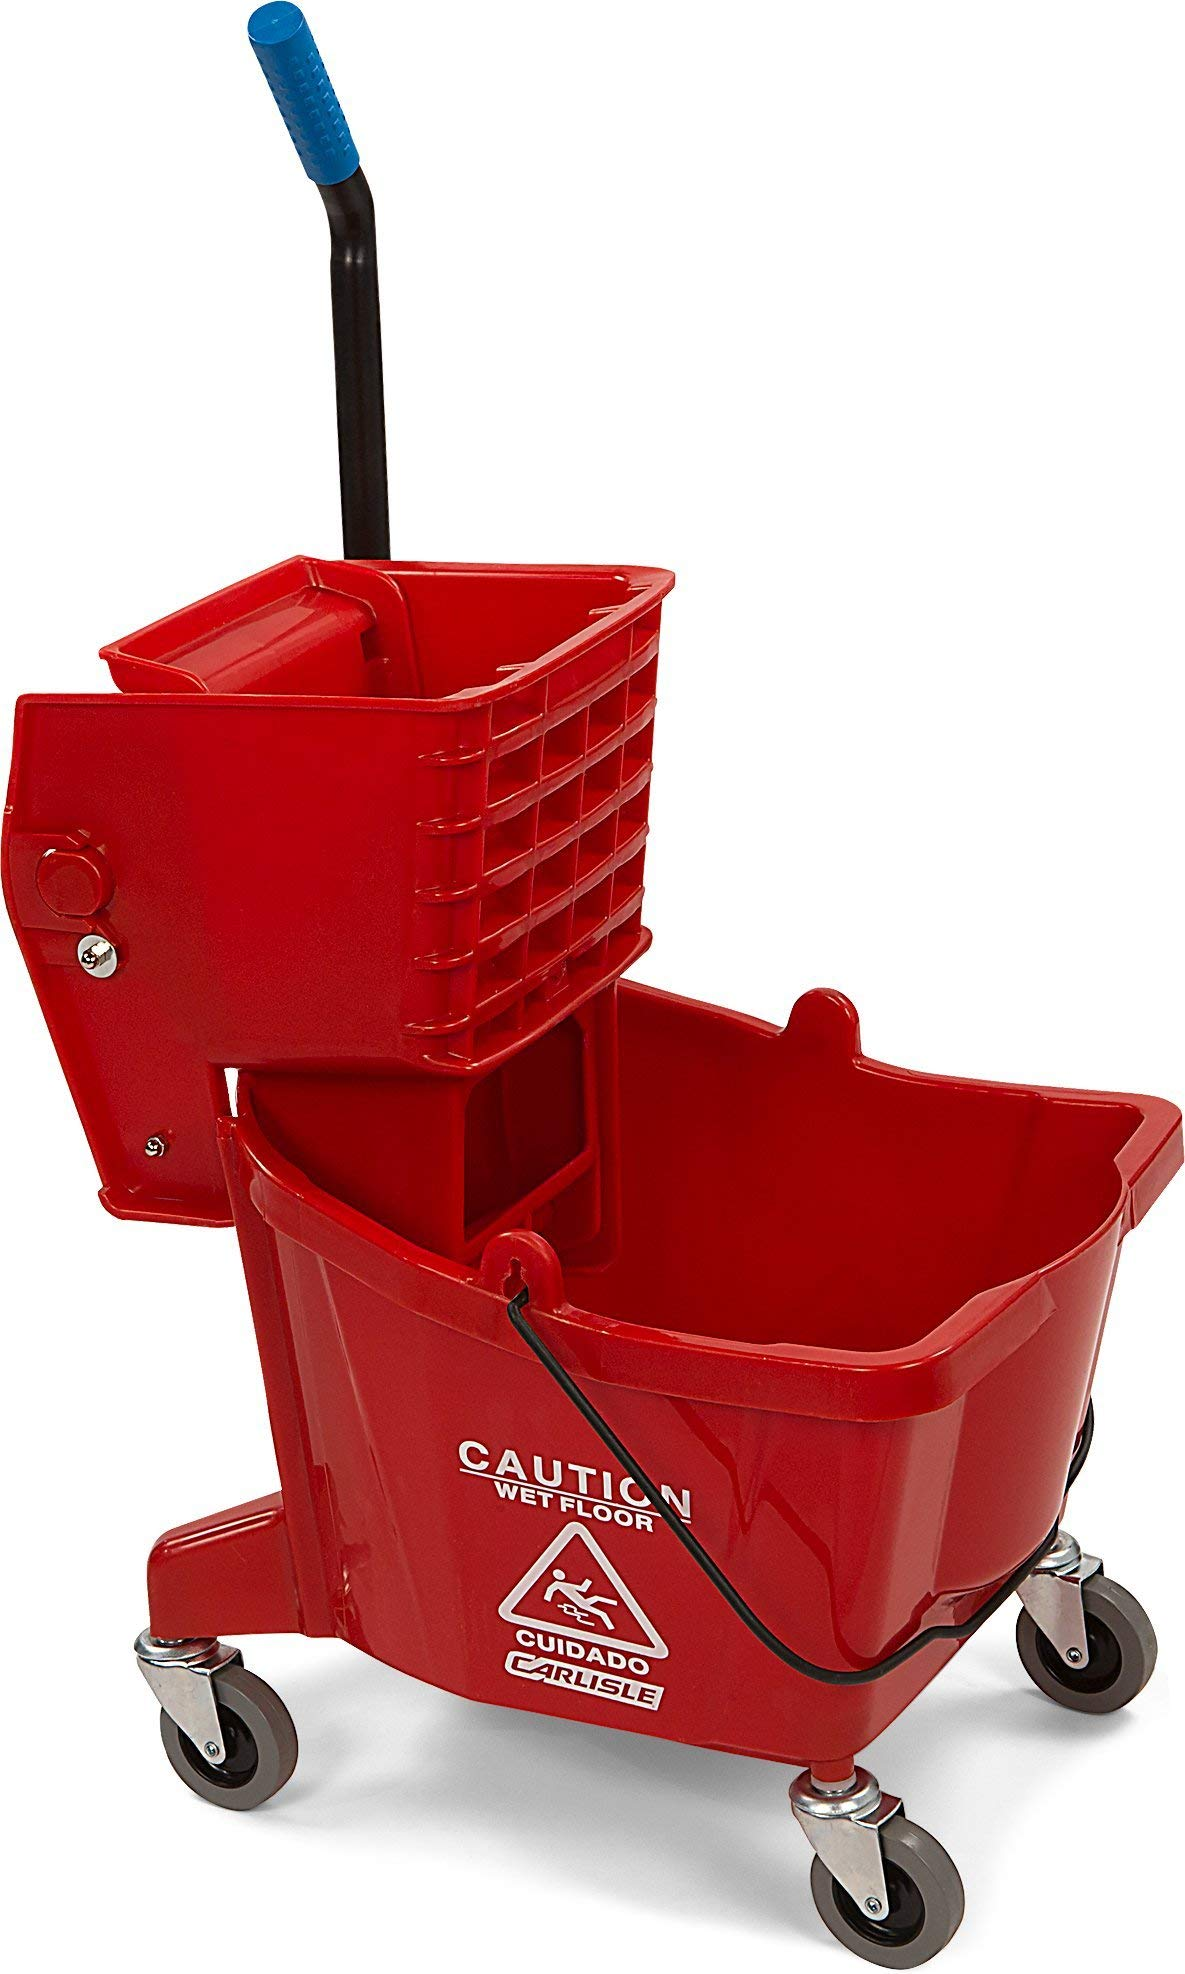 Carlisle 3690805 Commercial Mop Bucket with Side Press Wringer, 26 Quart Capacity, Red (Renewed)